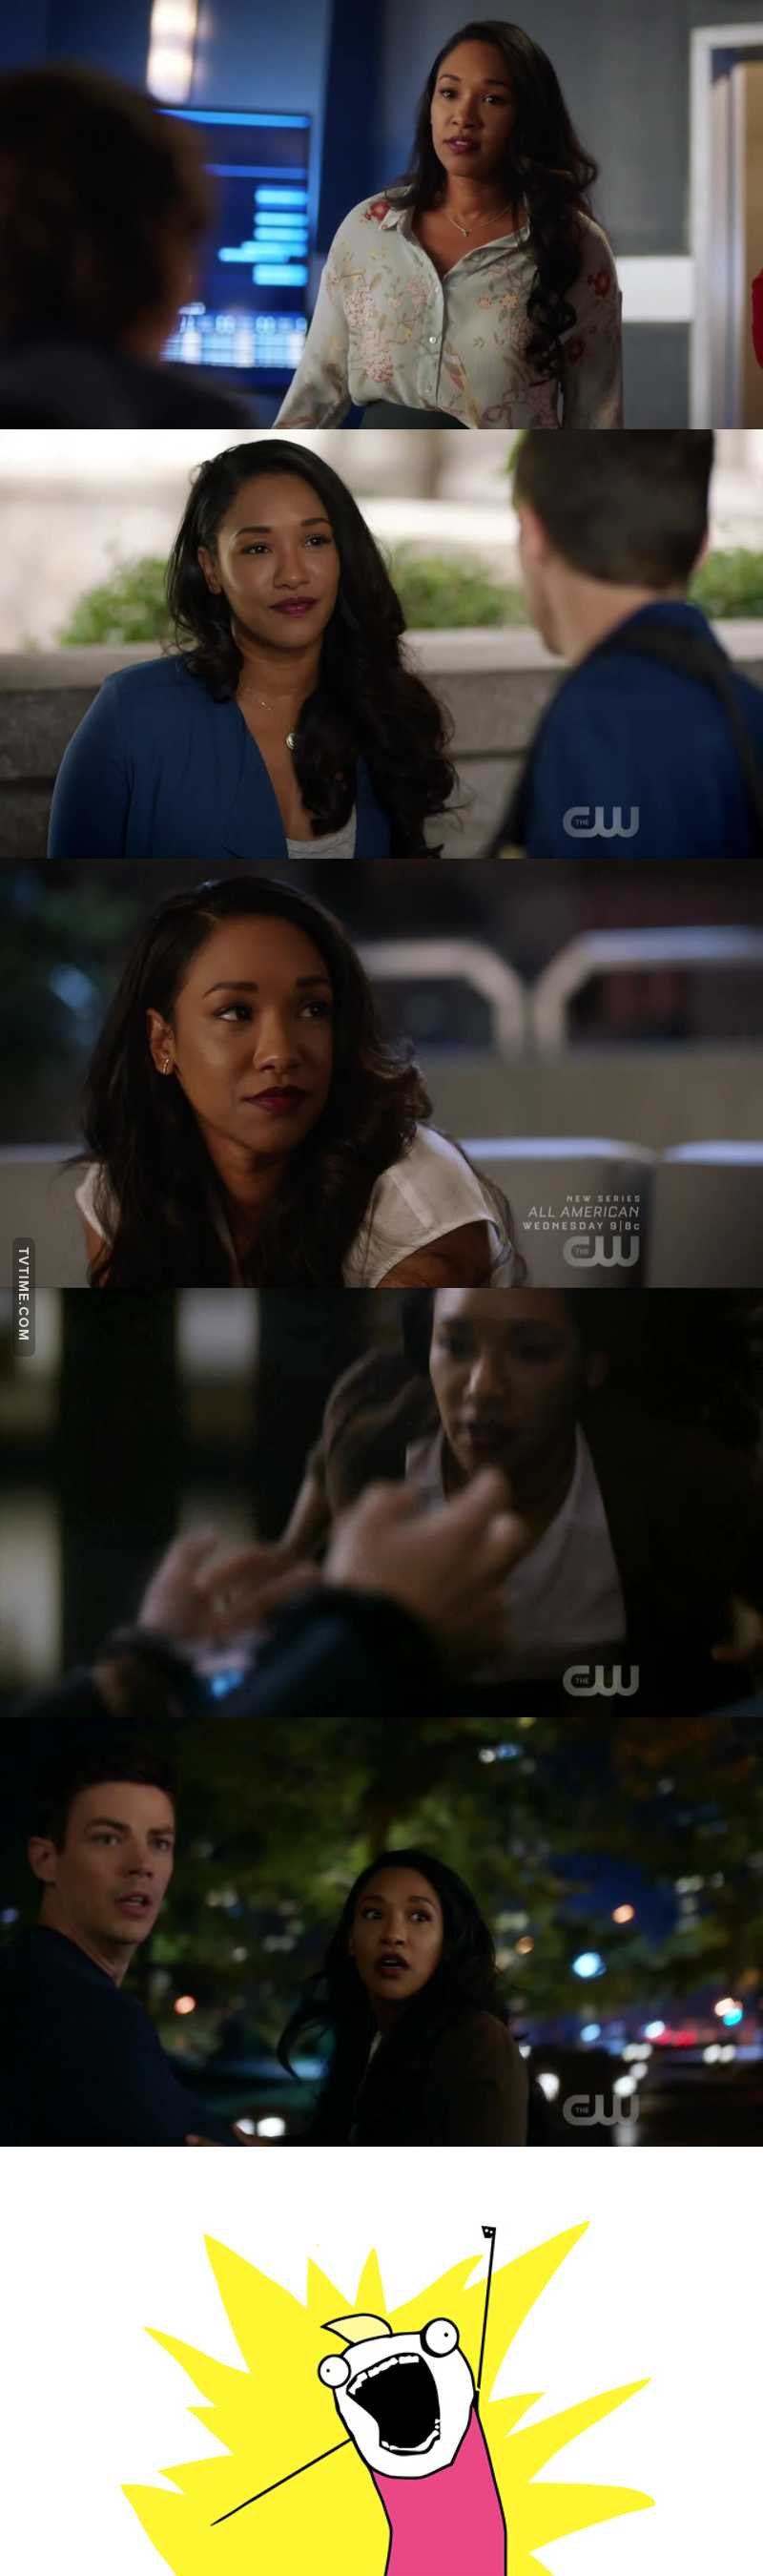 i am loving iris this season. and she was soo great this episode